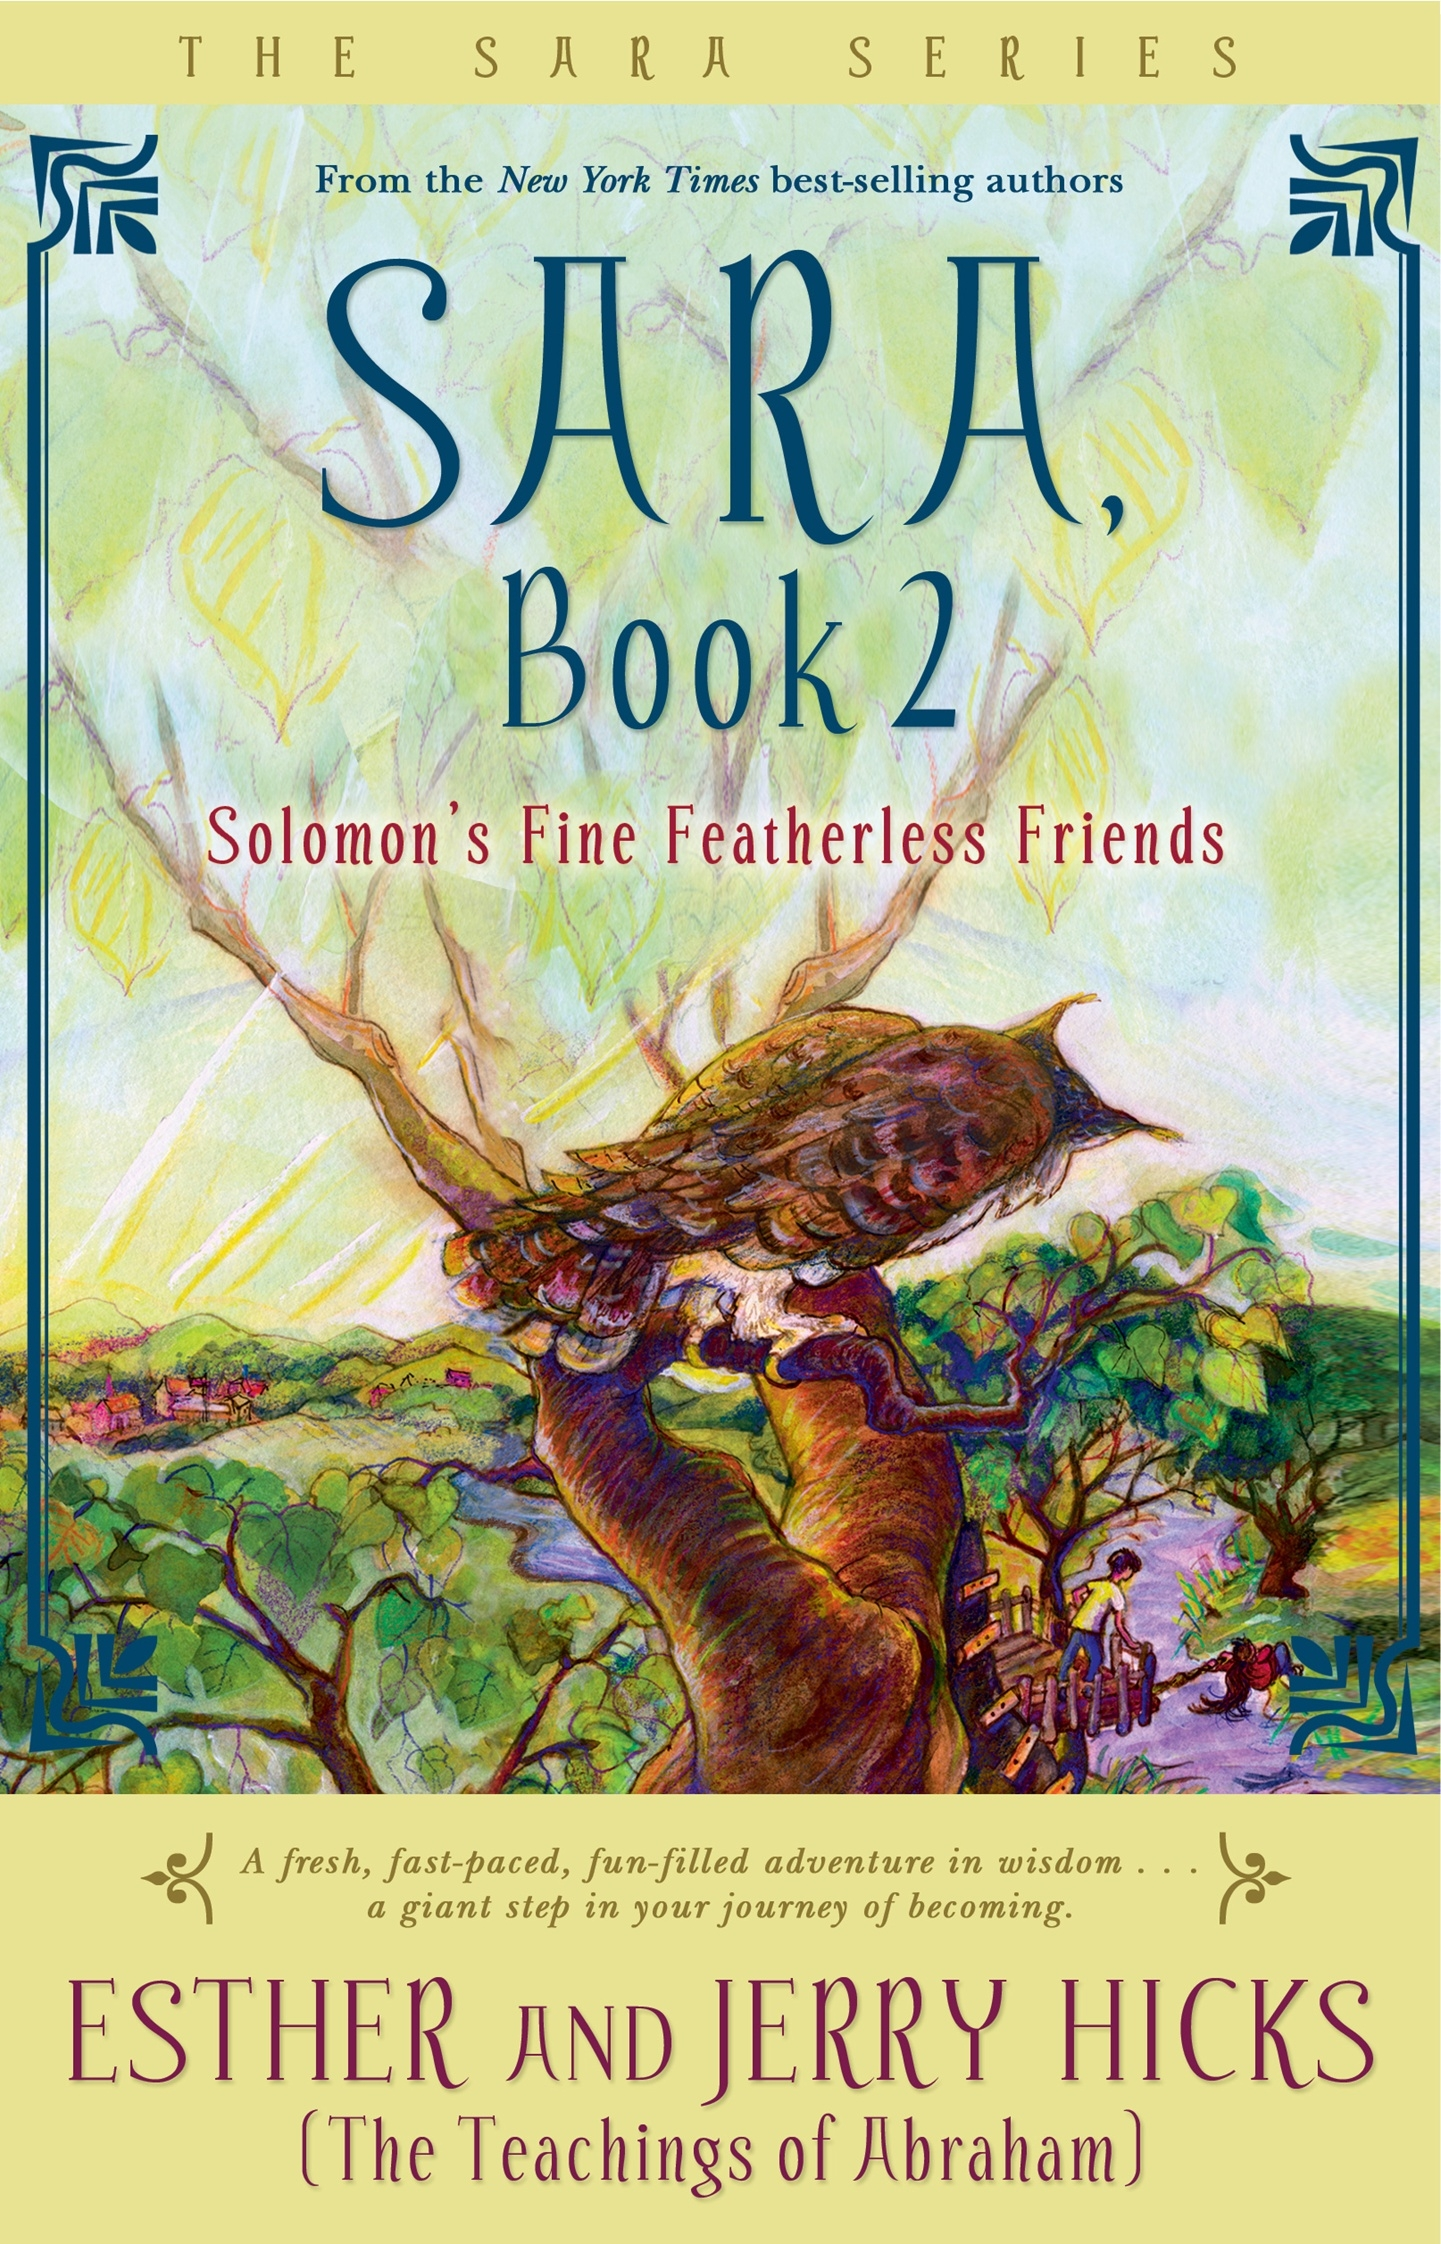 Sara Book 2: Solomon's Fine Featherless Friends | Puffin Books Australia